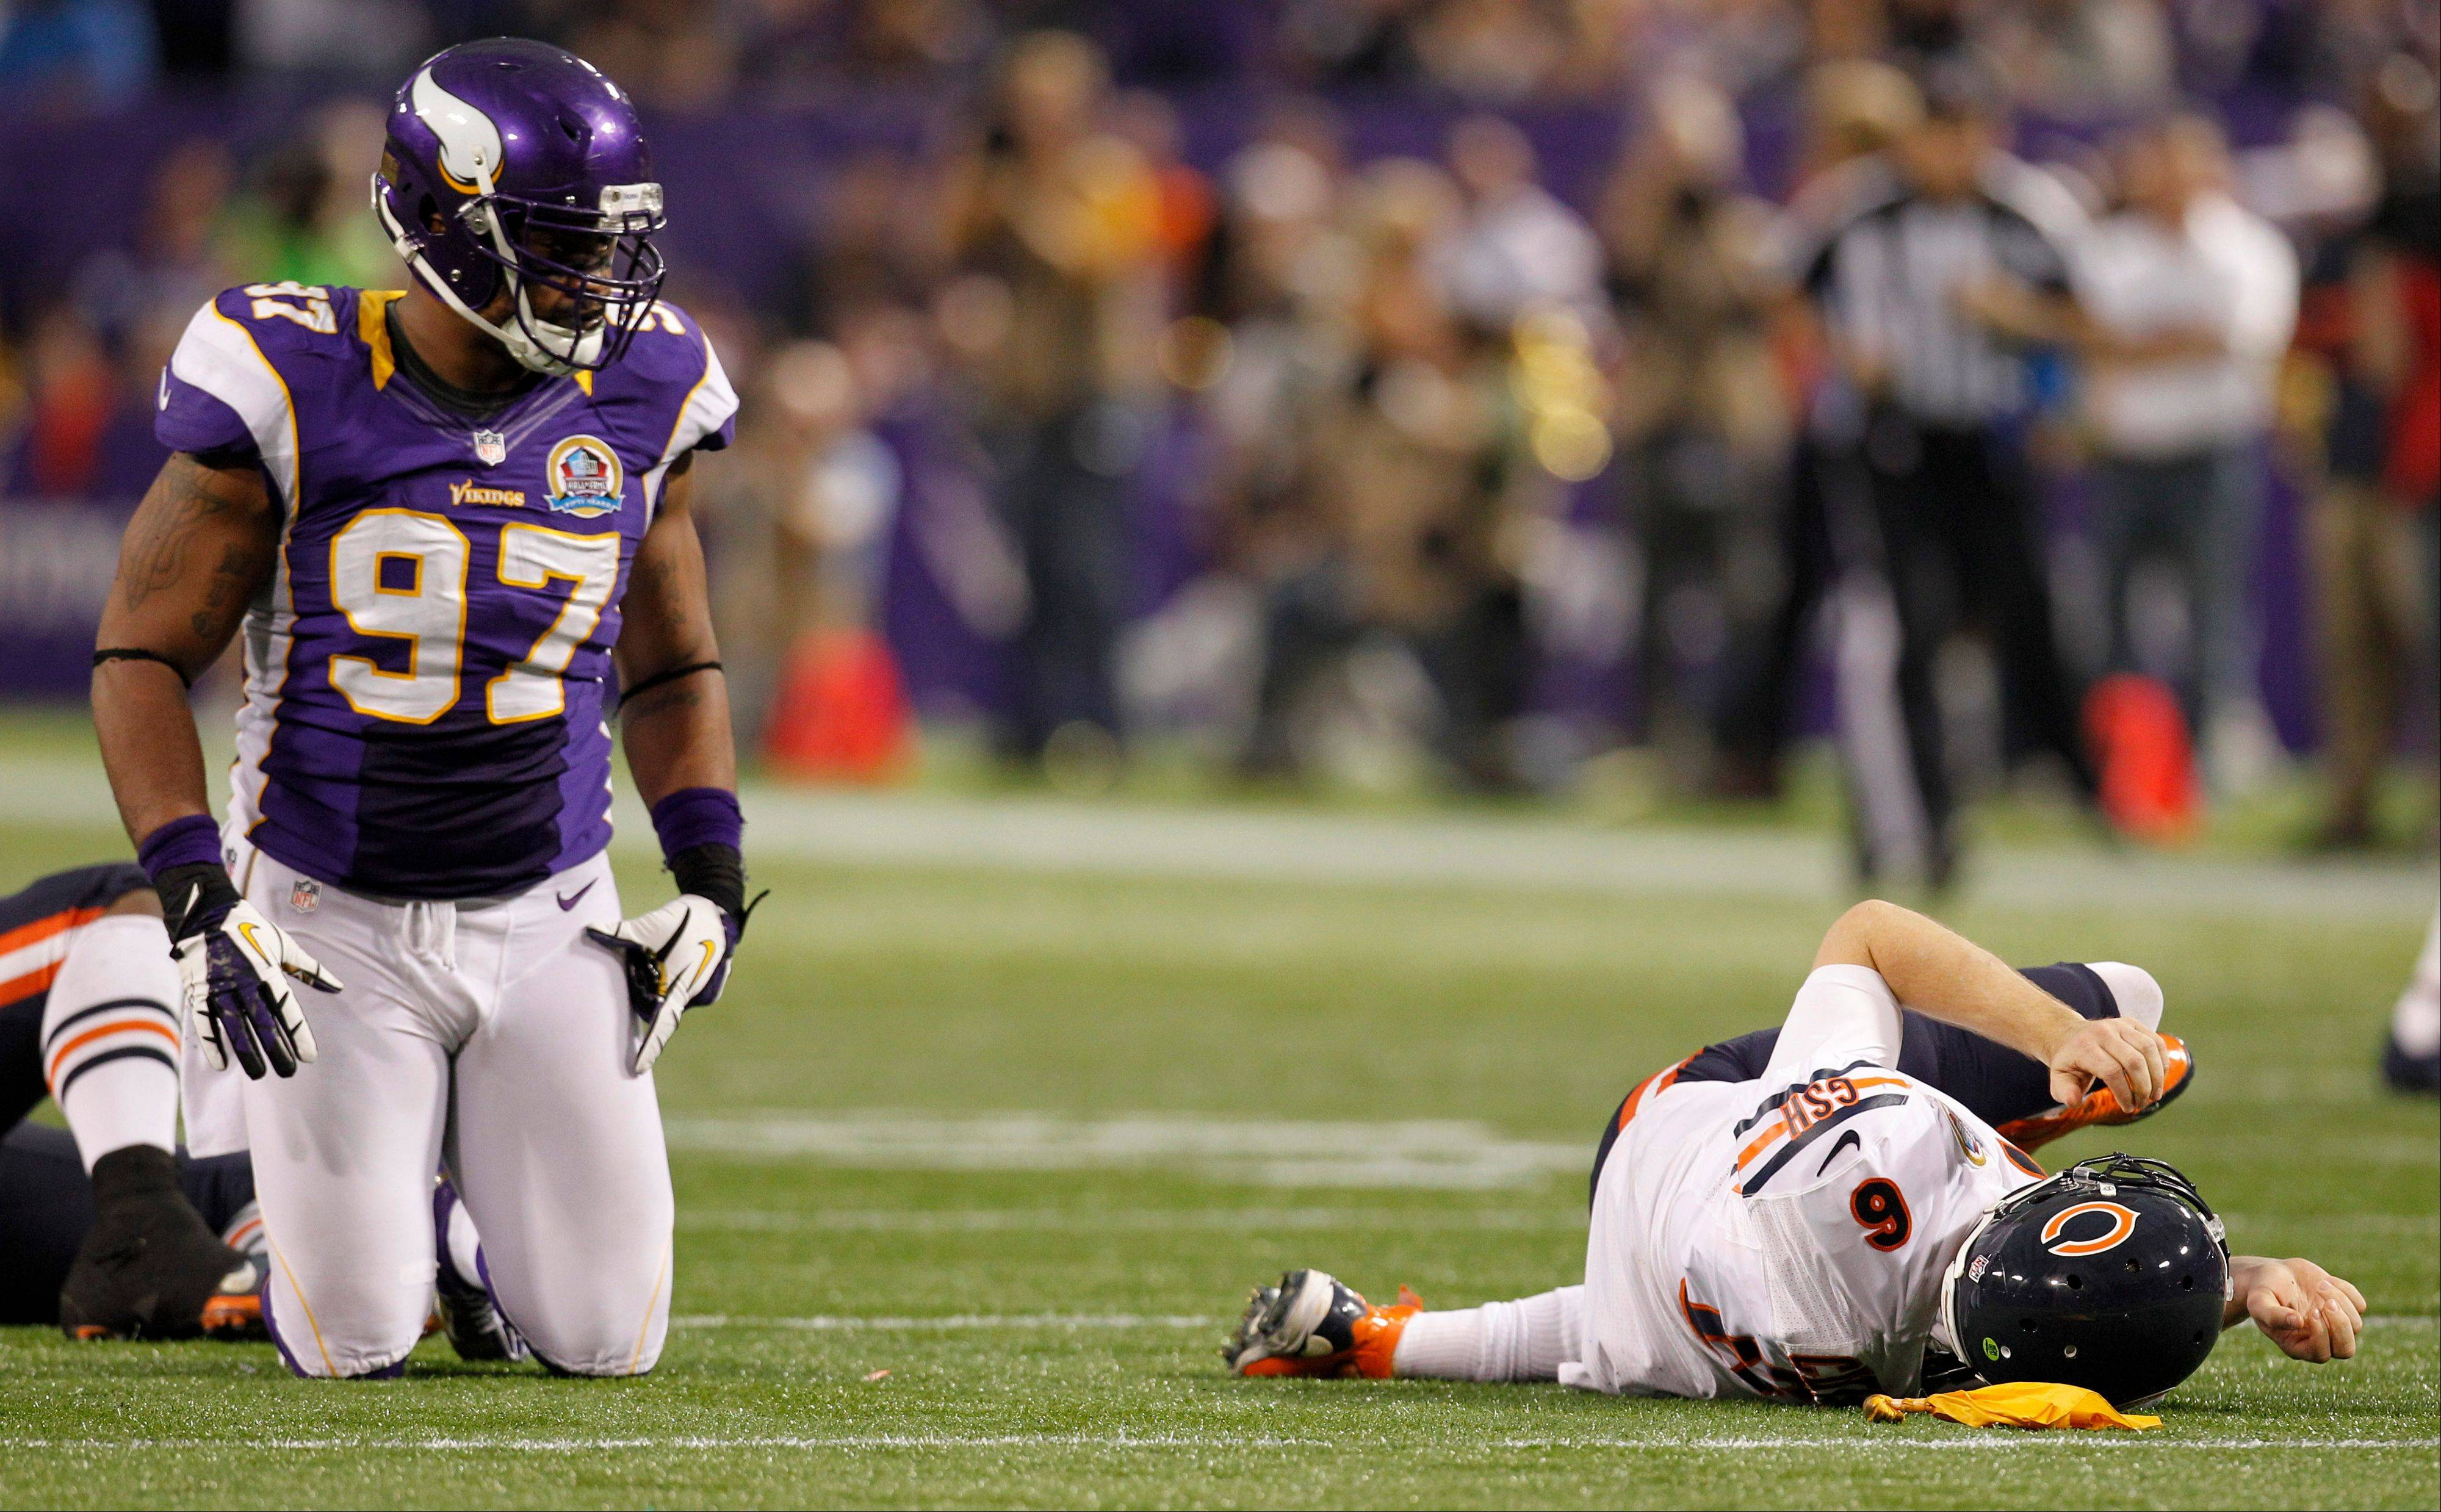 Jay Cutler lays on the field Sunday after getting tackled by Minnesota Vikings defensive end Everson Griffen, left, during the second half in Minneapolis. Griffen was called for a personal foul on the play.